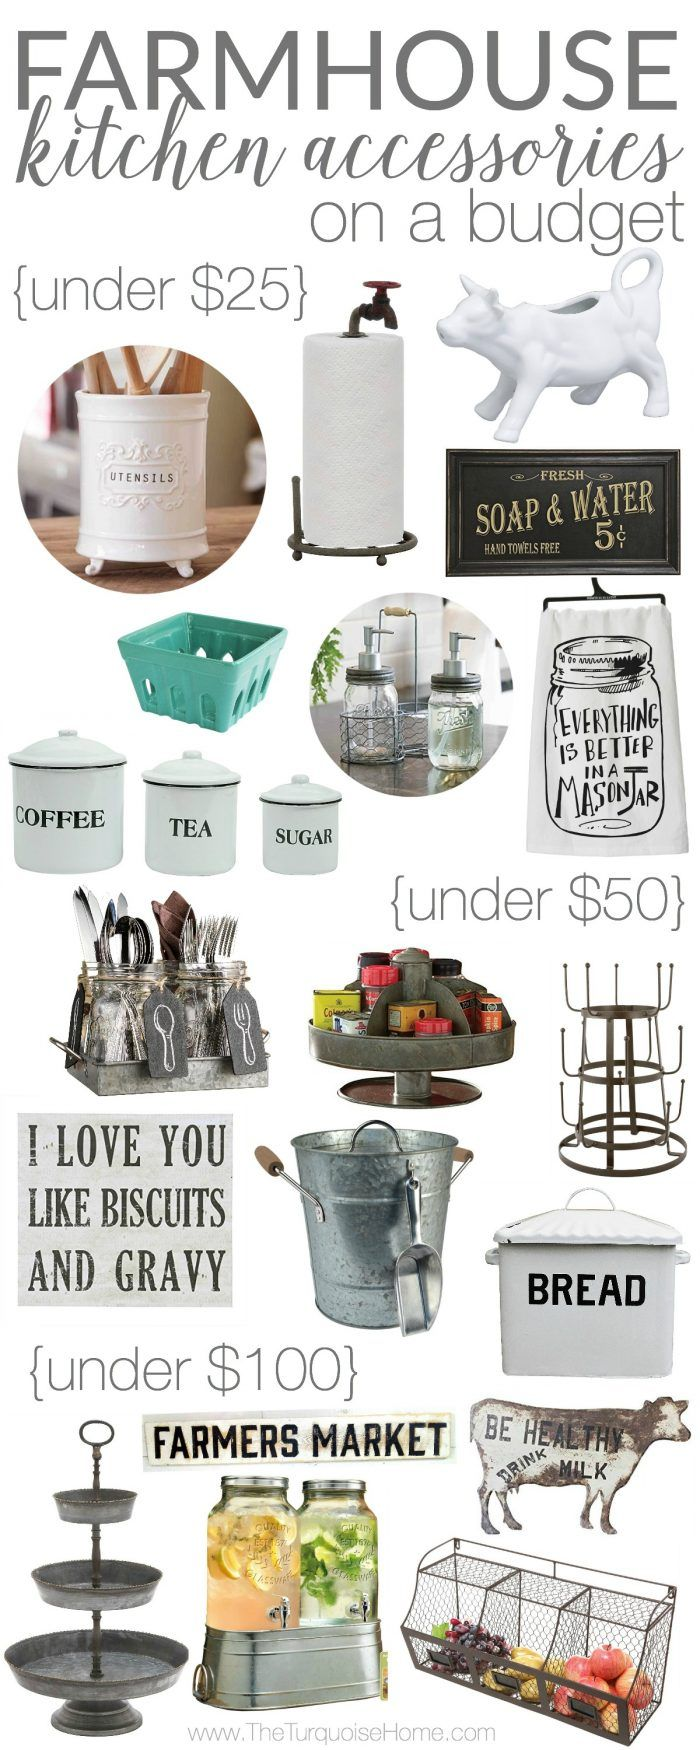 Farmhouse Kitchen Accessories on a Budget | Best of The ...